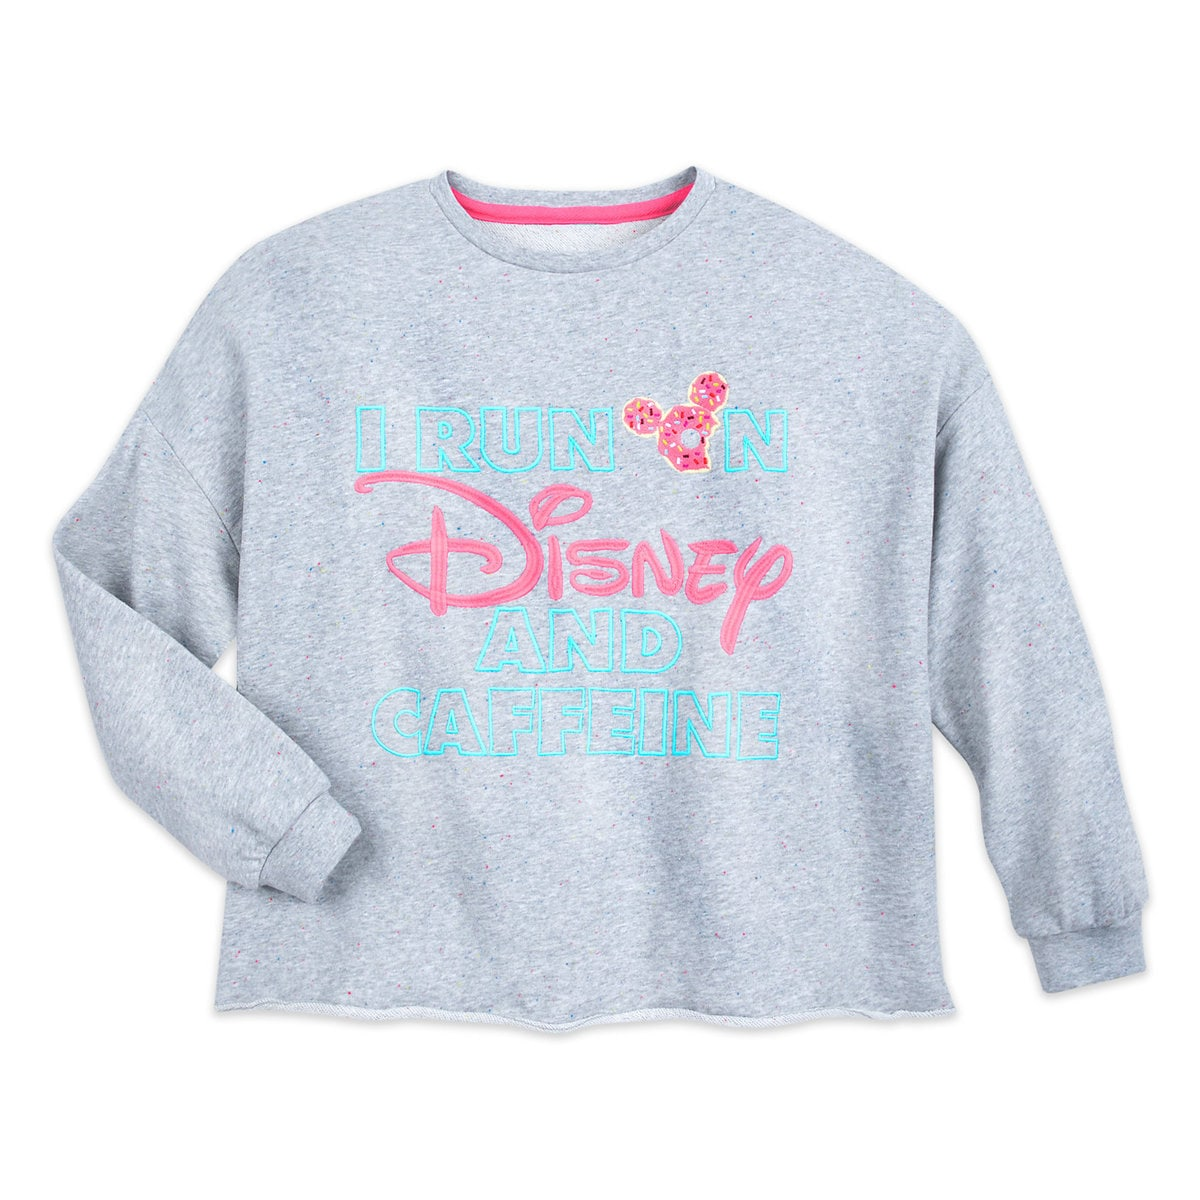 2563abfe9e2 Product Image of Mickey Mouse   Disney and Caffeine Pullover   Sweatshirt  for Women